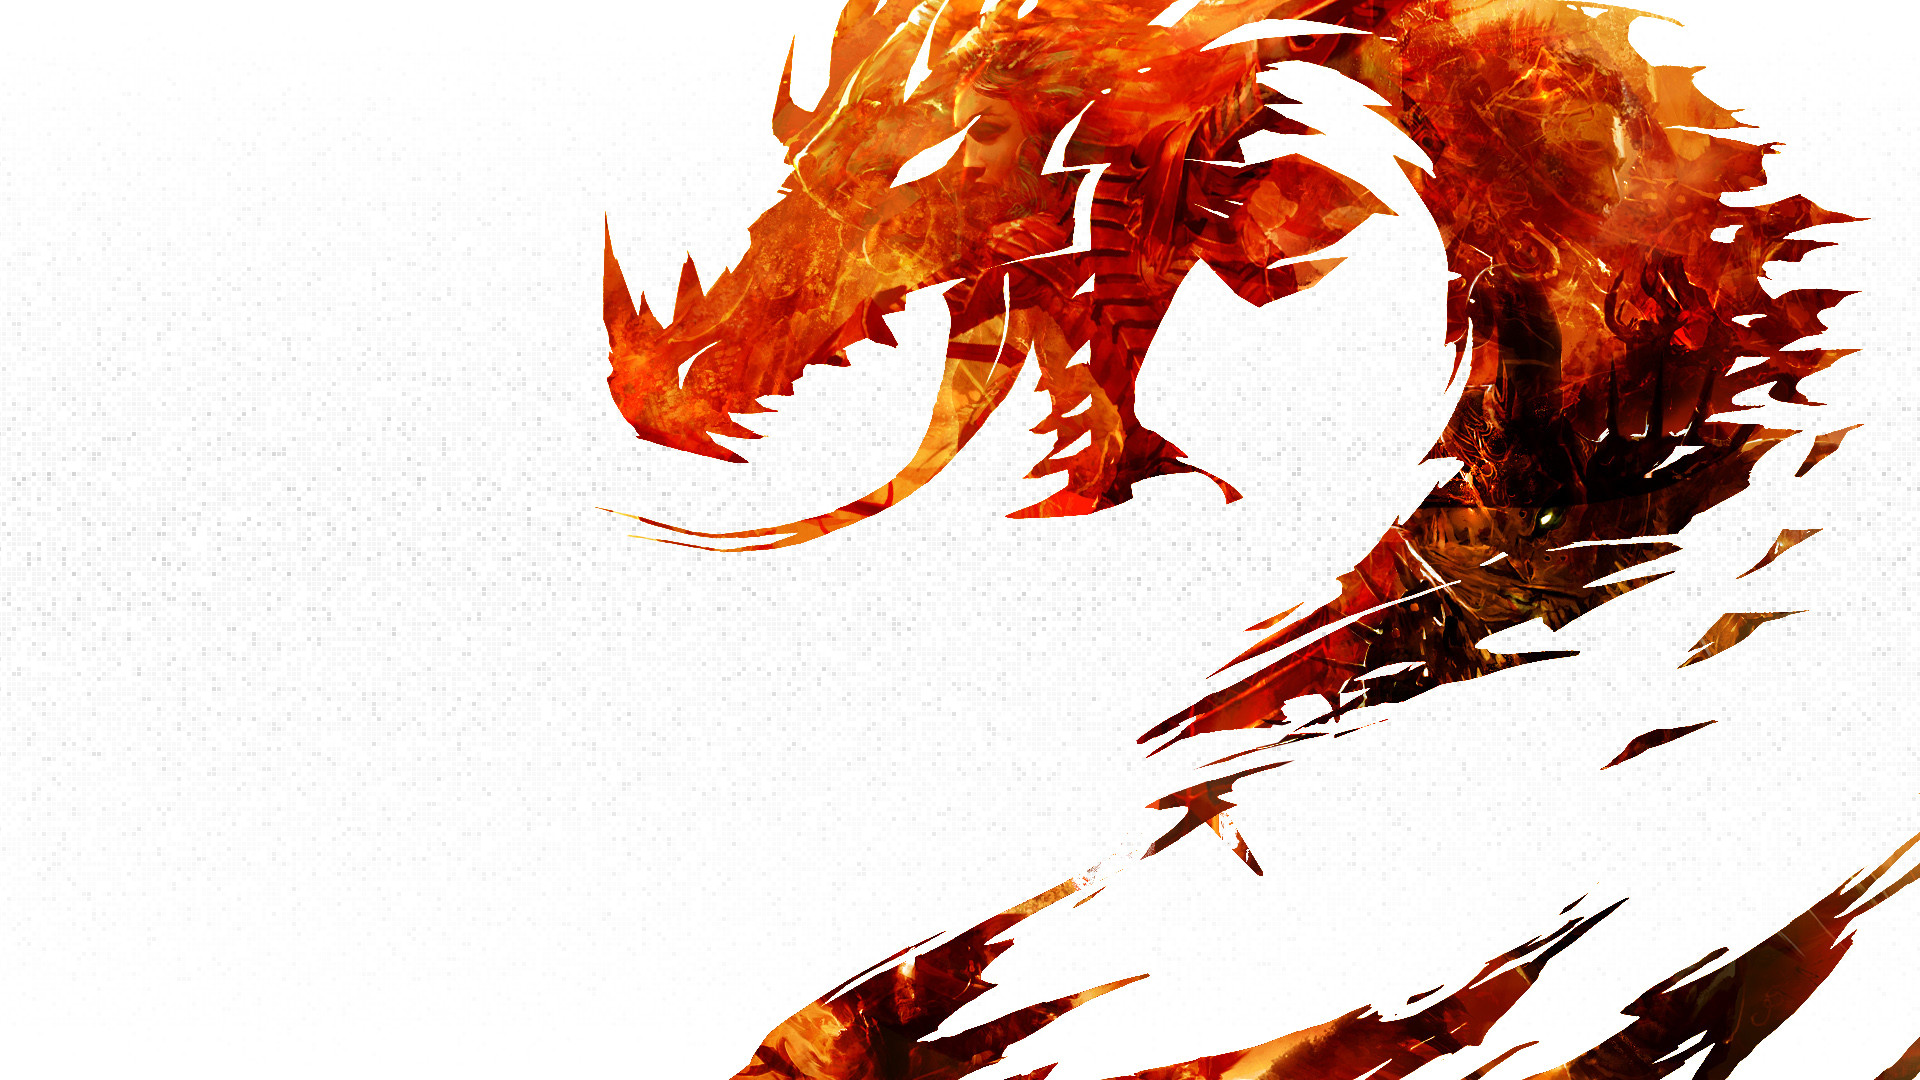 Must see Wallpaper Abstract Dragon - 1059968-red-dragon-wallpapers-1920x1080-picture  Snapshot_356970 .jpg